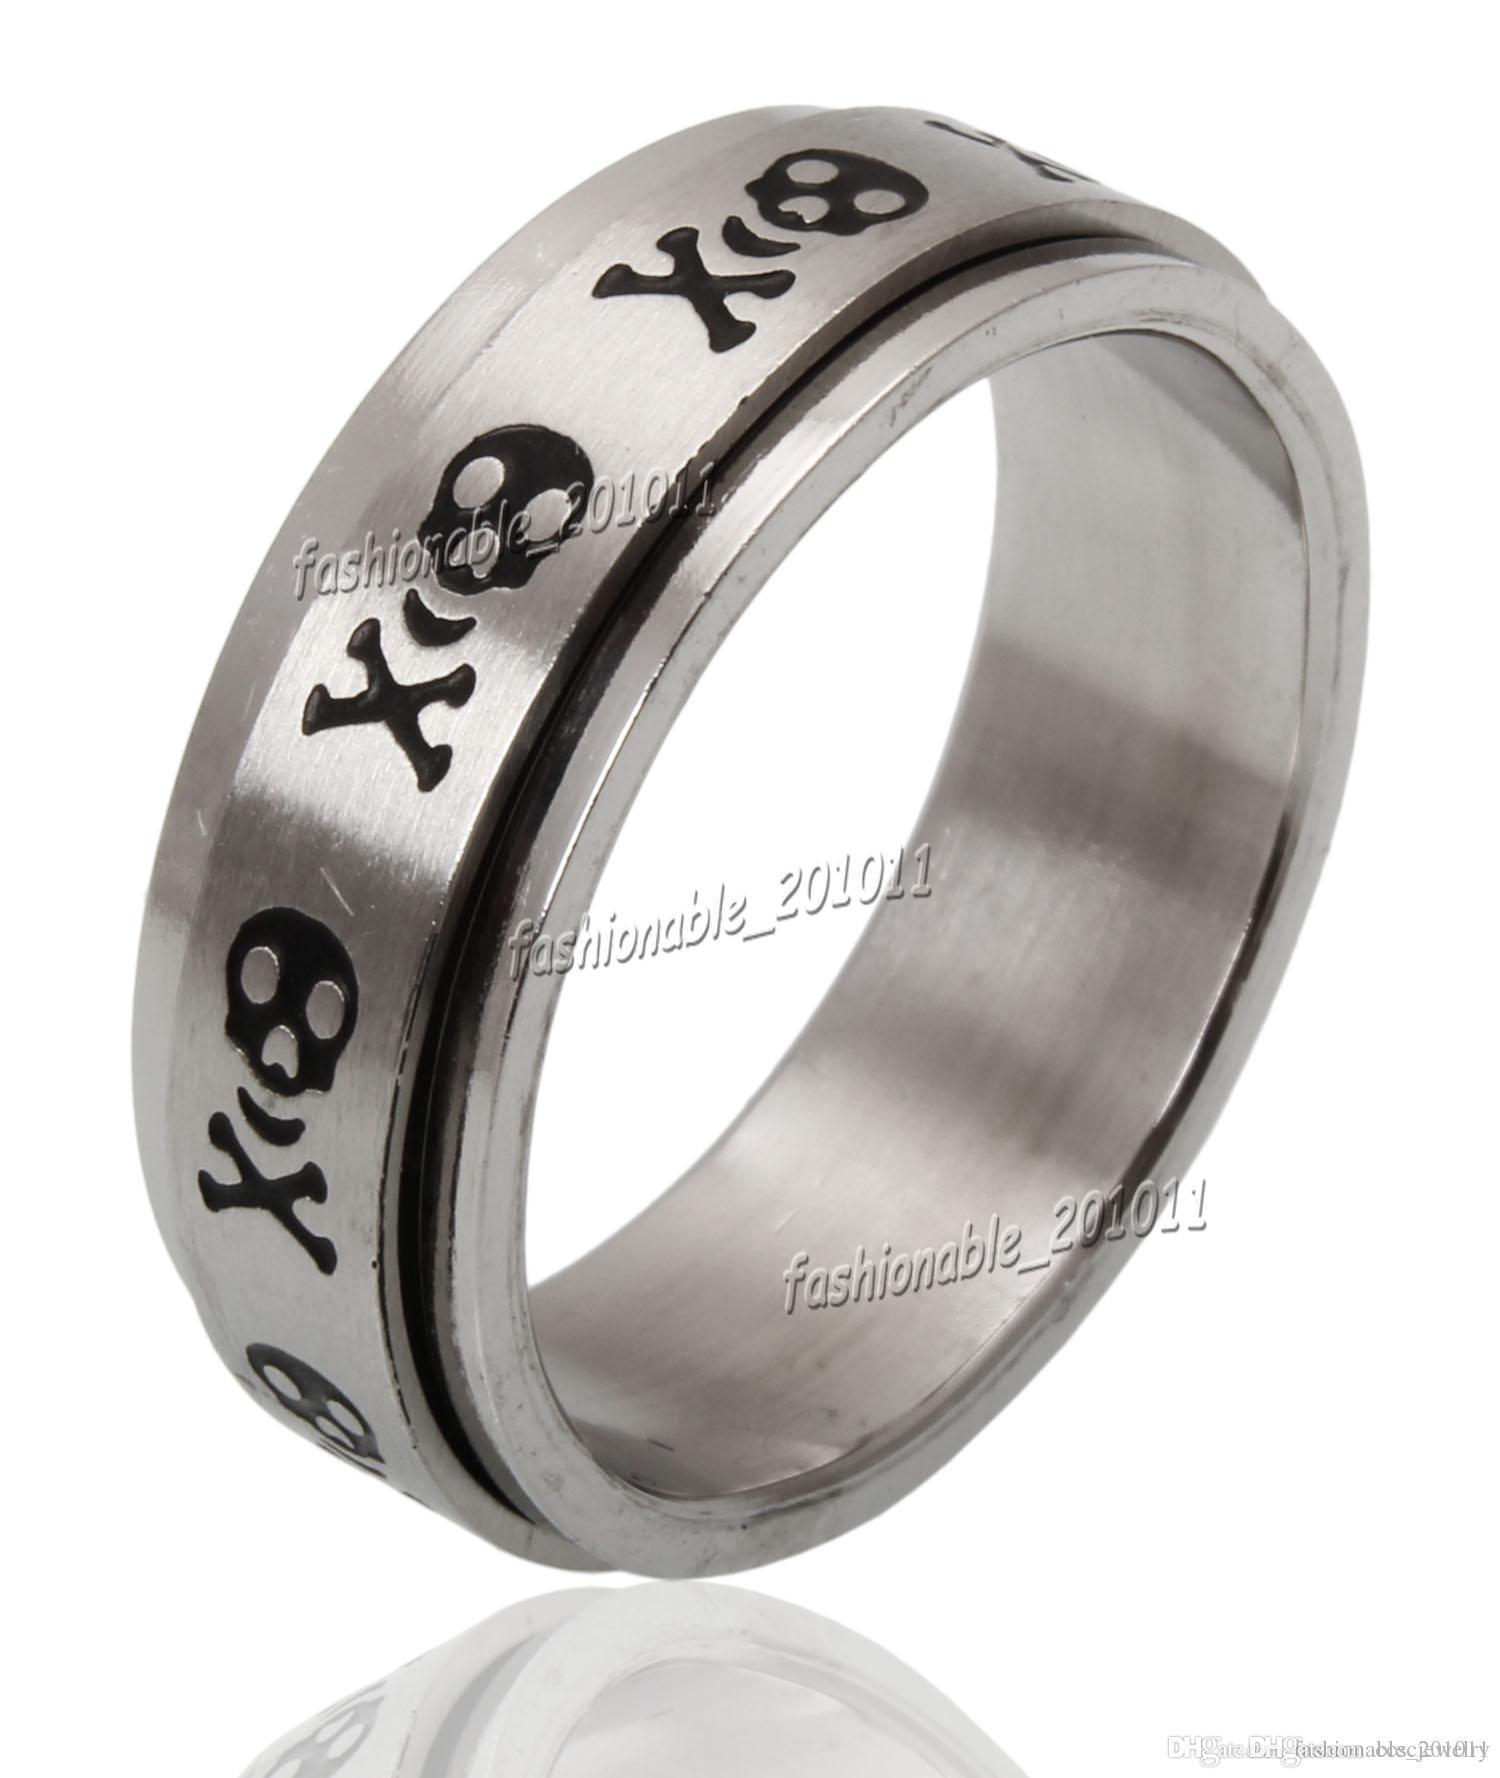 beckers black directional pyramid jewelers finish satin rings pattern band with faceted tungsten